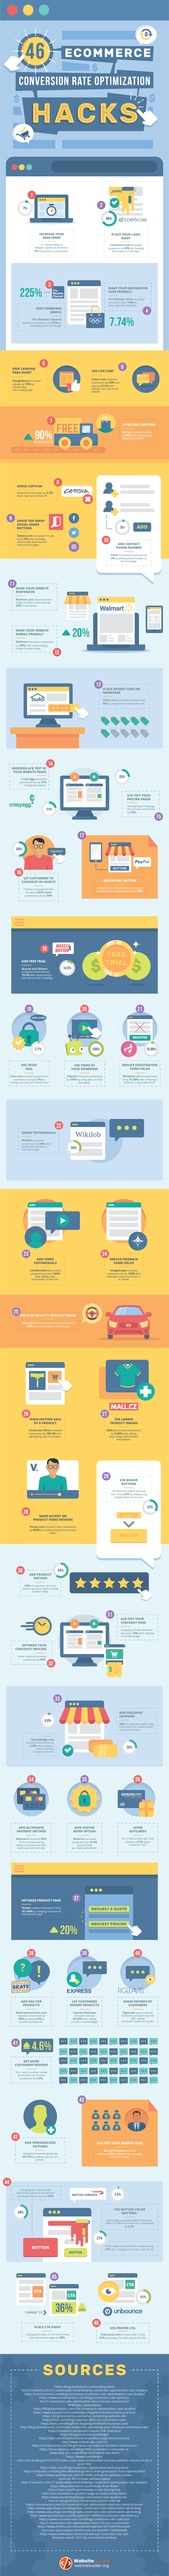 46 Ecommerce Conversion Rate Optimzation Hacks - InCore Marketing - Infographic